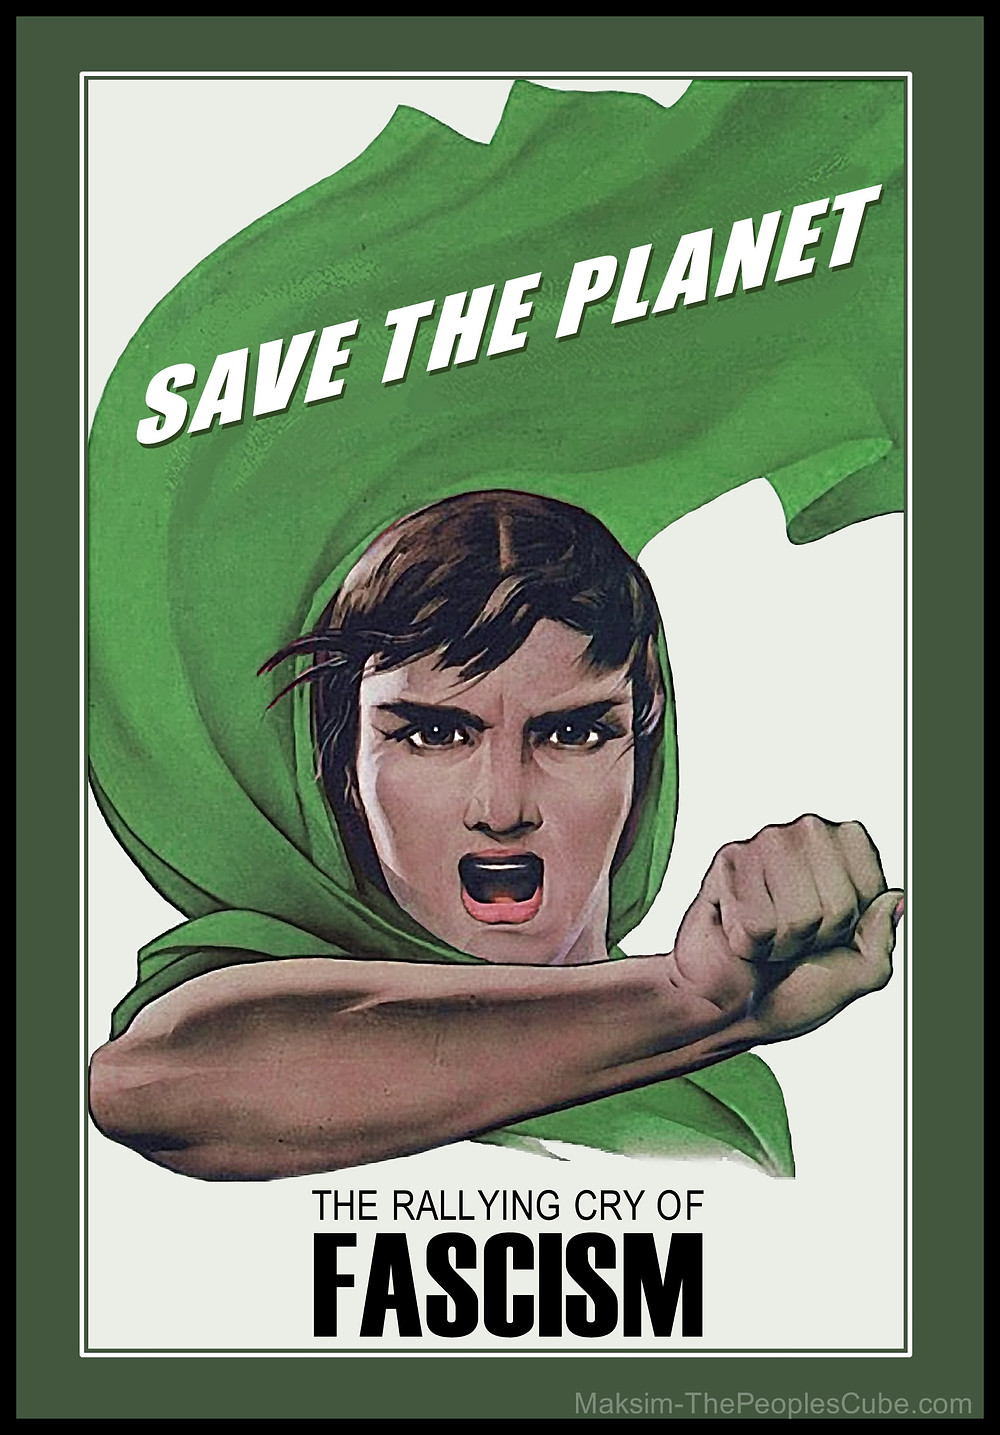 save the planet- the rallying cry of fascism